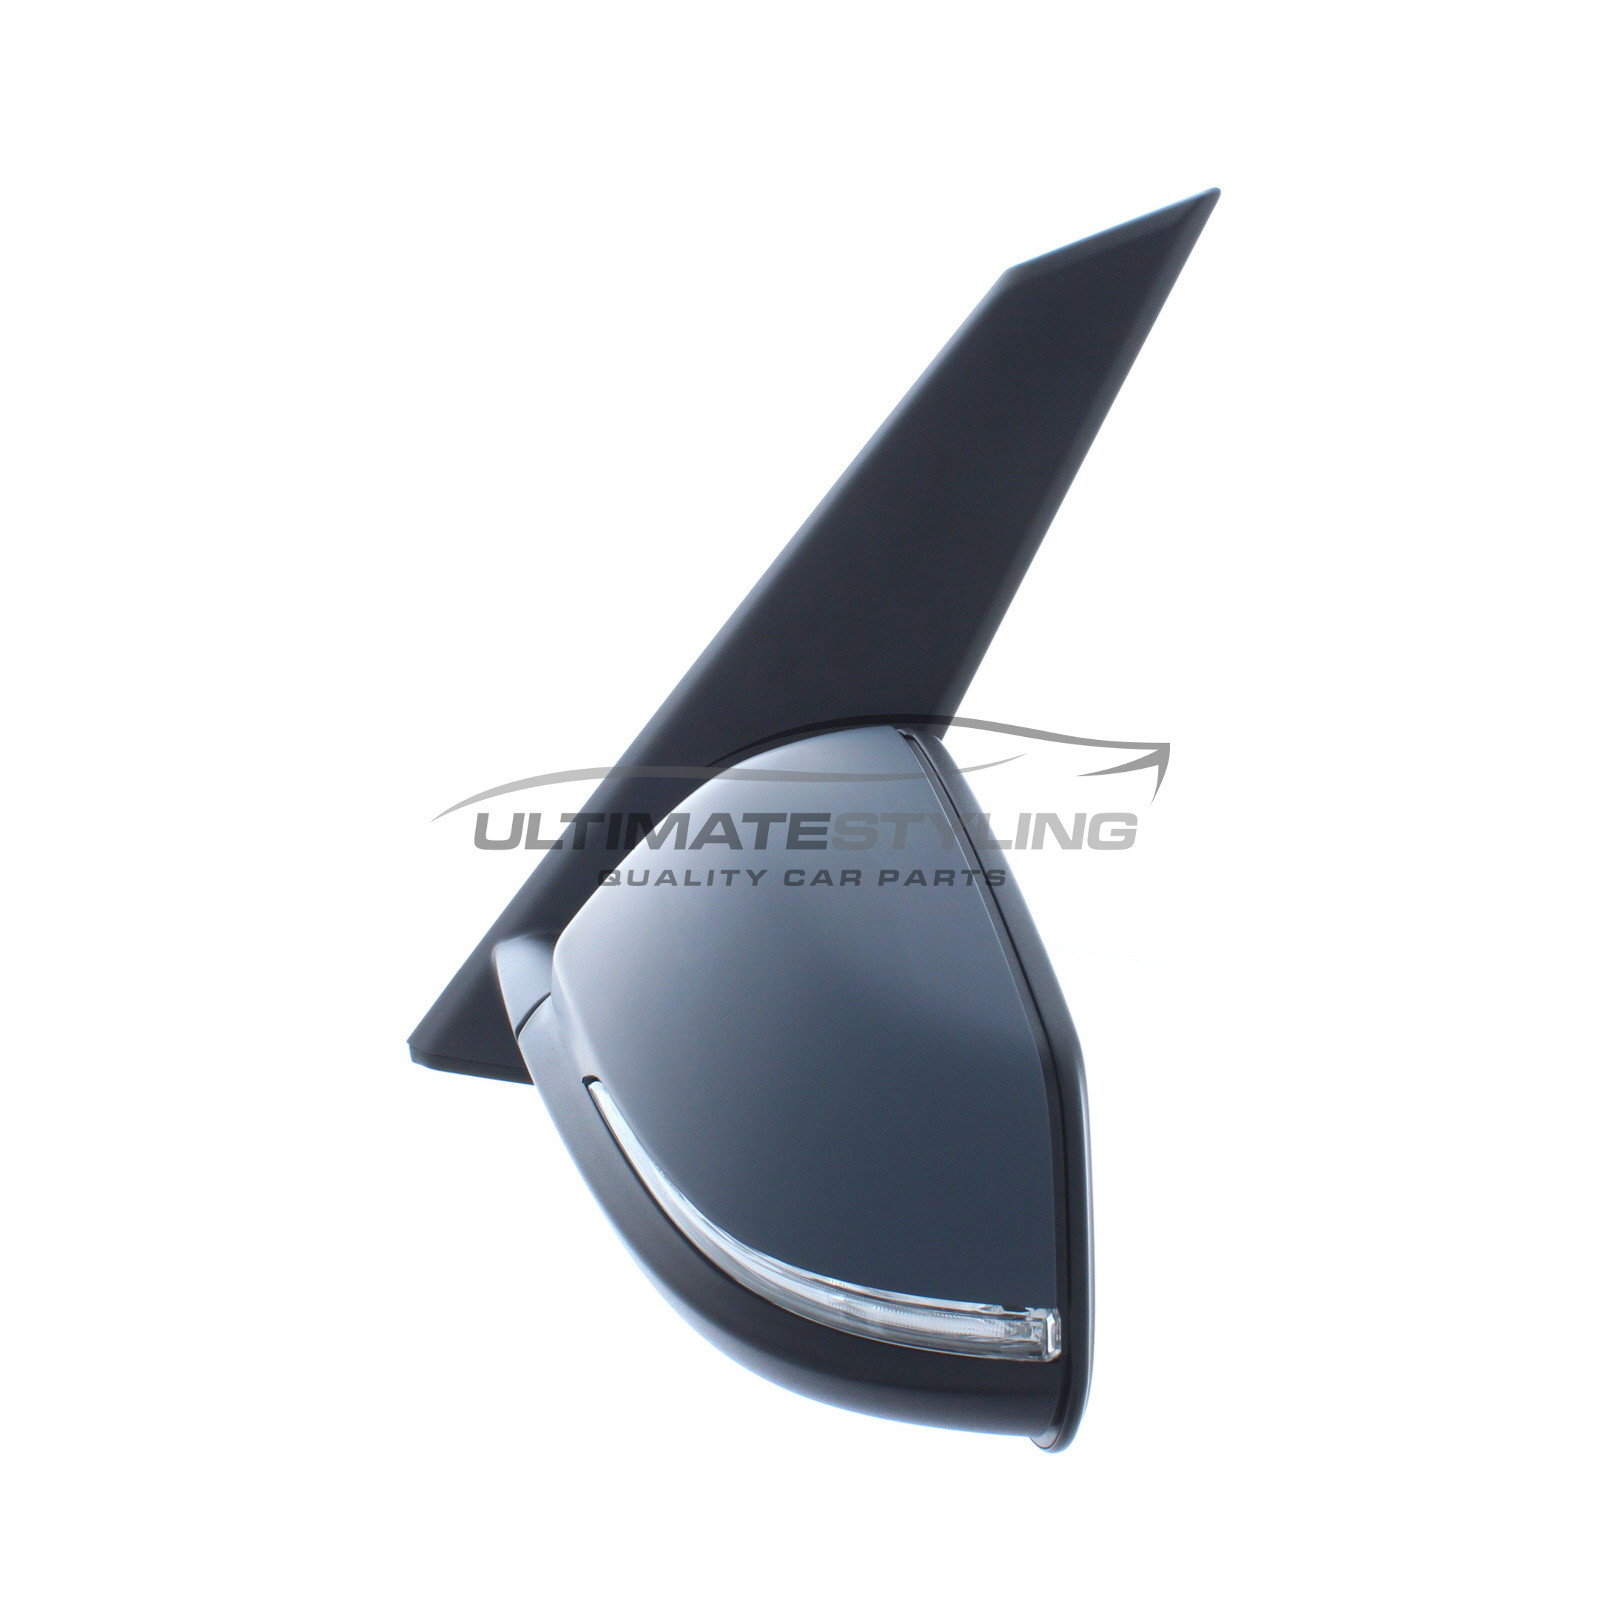 2X Wind Deflectors Compatible with ABARTH or FIAT 500 Coupe 500C Cabrio 2007-present Dark Smoke Tinted Acrylic Glass Door Side Windows In-Channel Visors Rain Snow Sun Guards